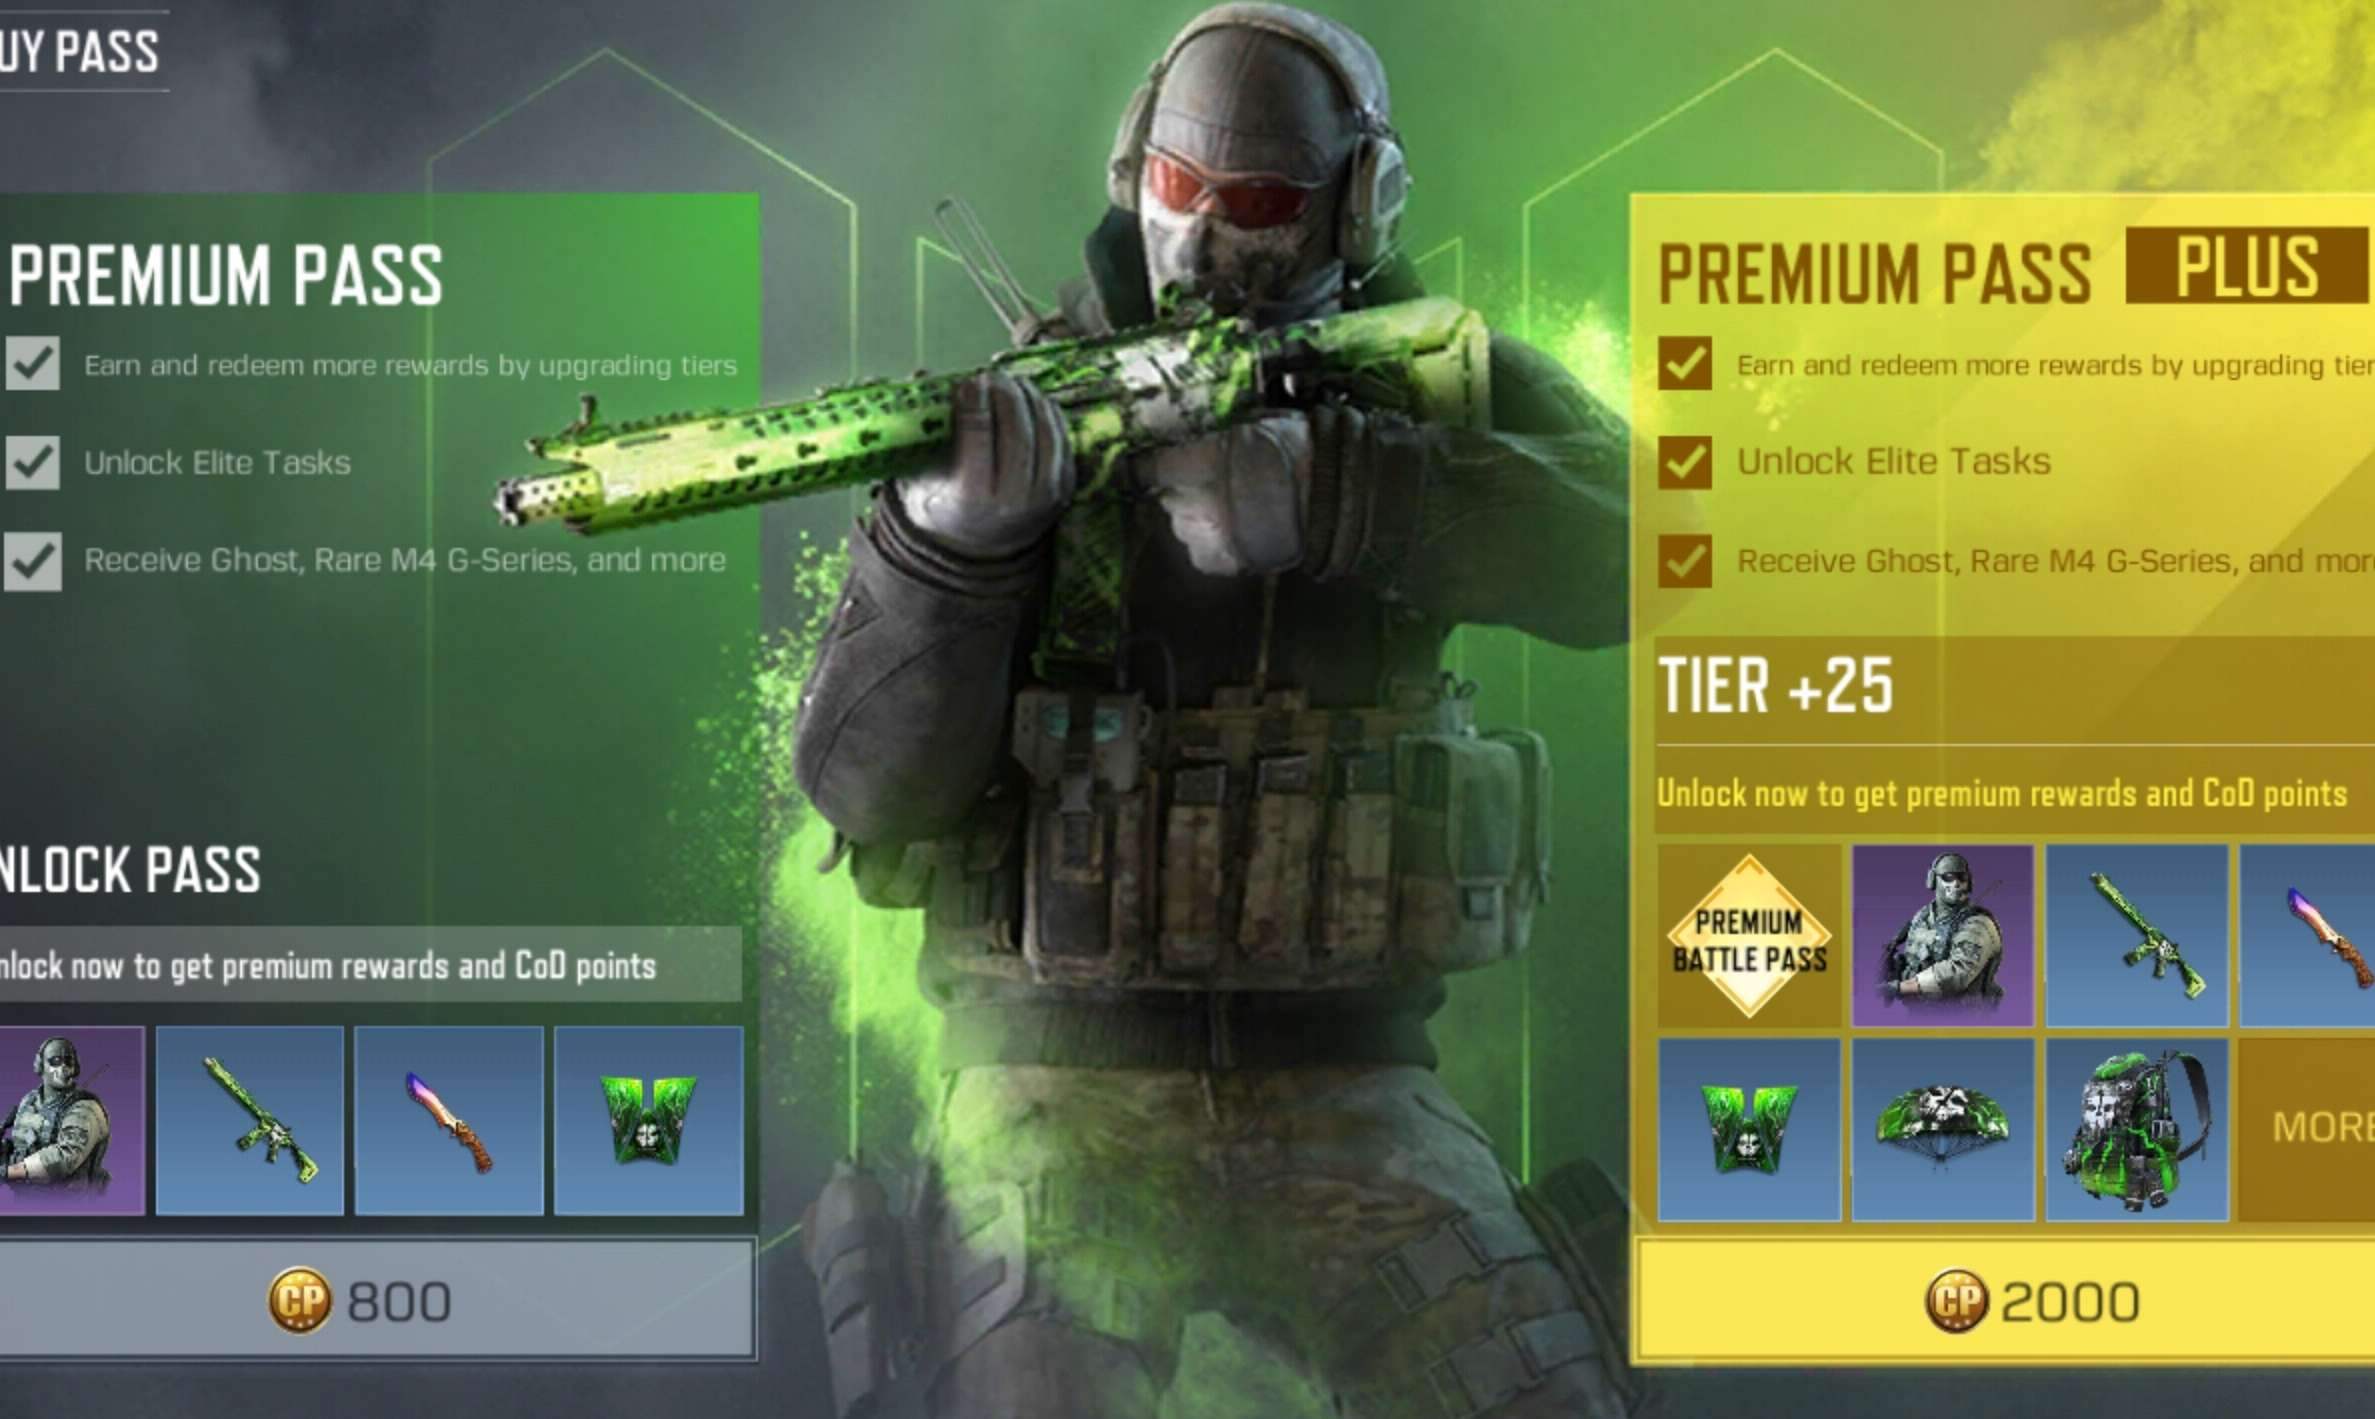 [Unlimited 9999] Free Cod Points & Credits Call Of Duty Mobile Battle Royale Mode Release Date